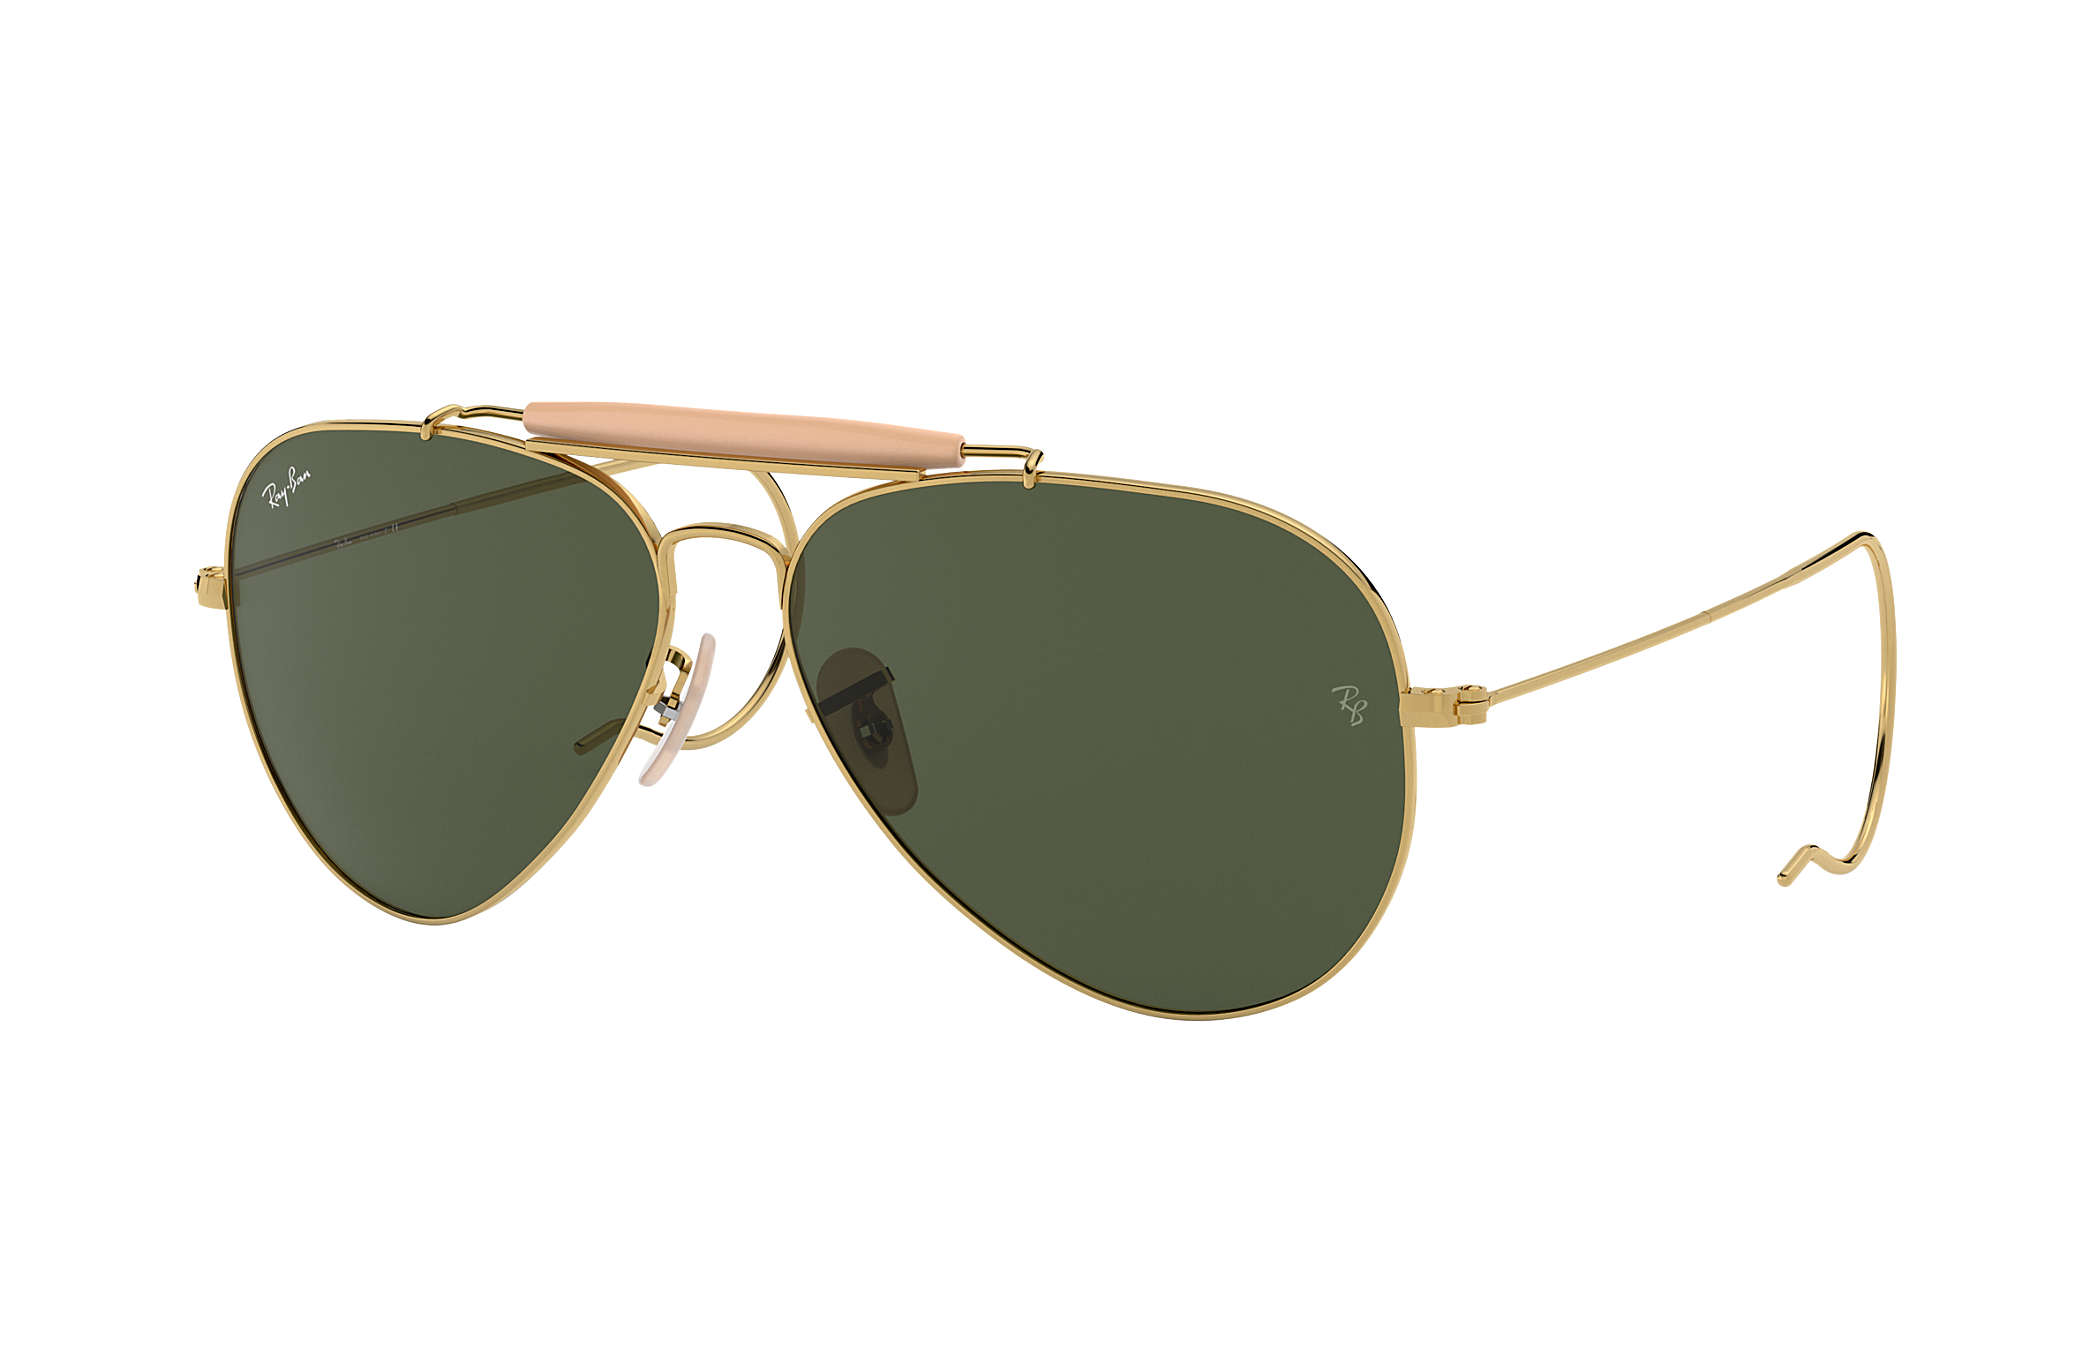 ray ban prescription sunglasses forum  ray ban 0rb3030 outdoorsman gold sun